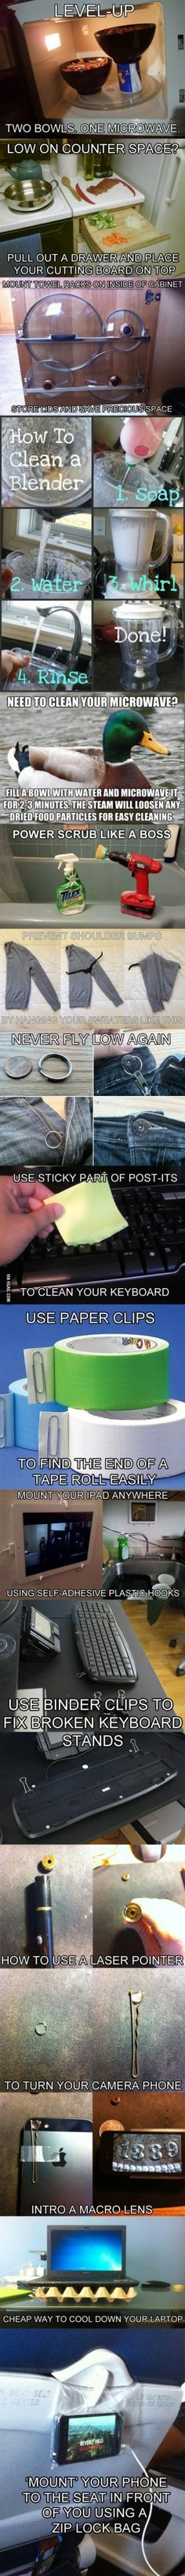 Clever Life Hacks to Simplify Your World